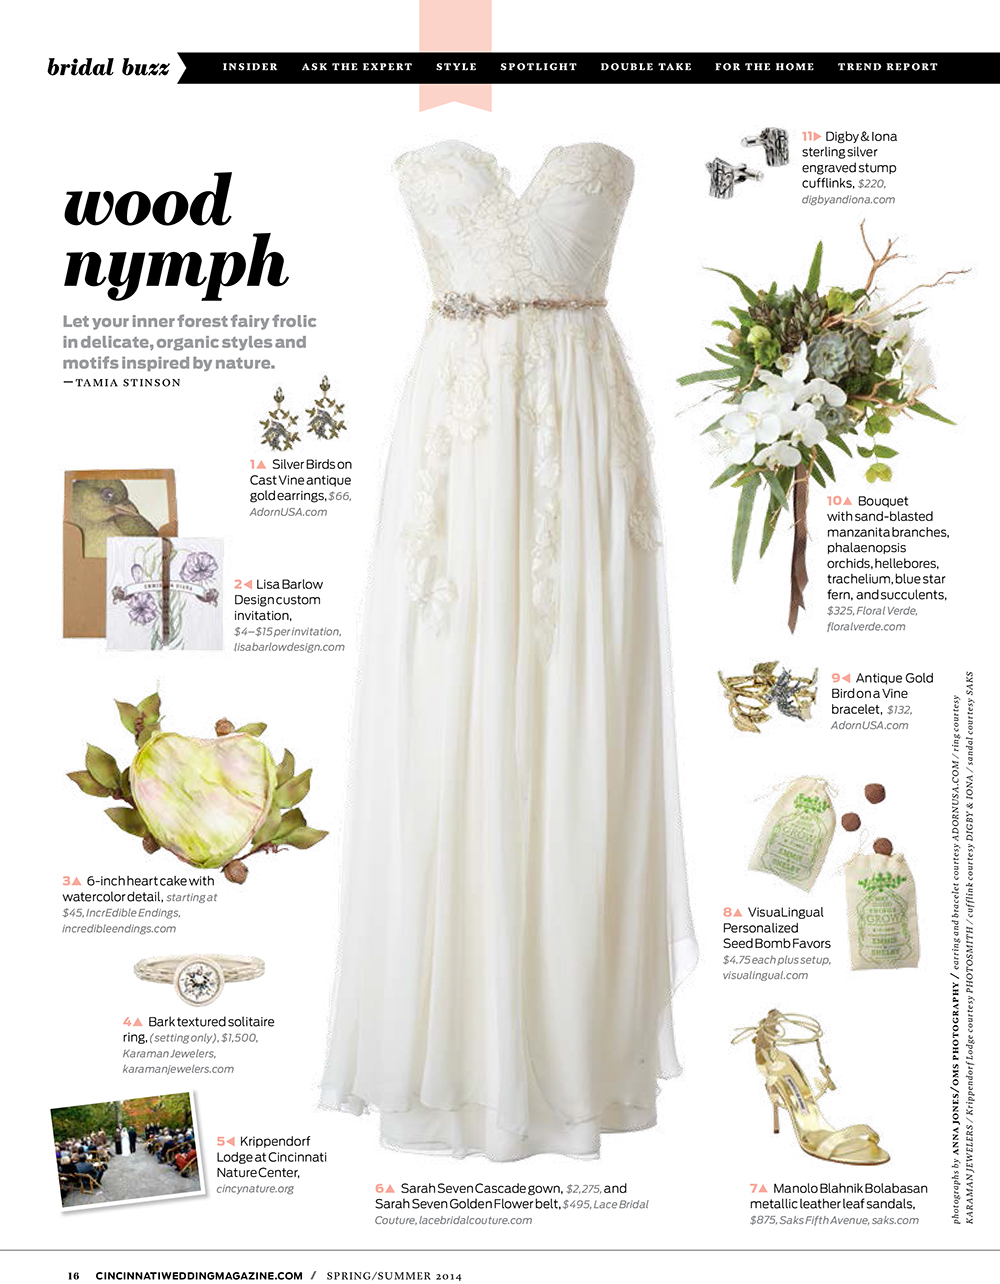 Wood Nymph style sheet by Tamia Stinson in Cincinnati Wedding Magazine Spring/Summer 2014 issue. Bouquet by Floral Verde LLC Cincinnati, Ohio.